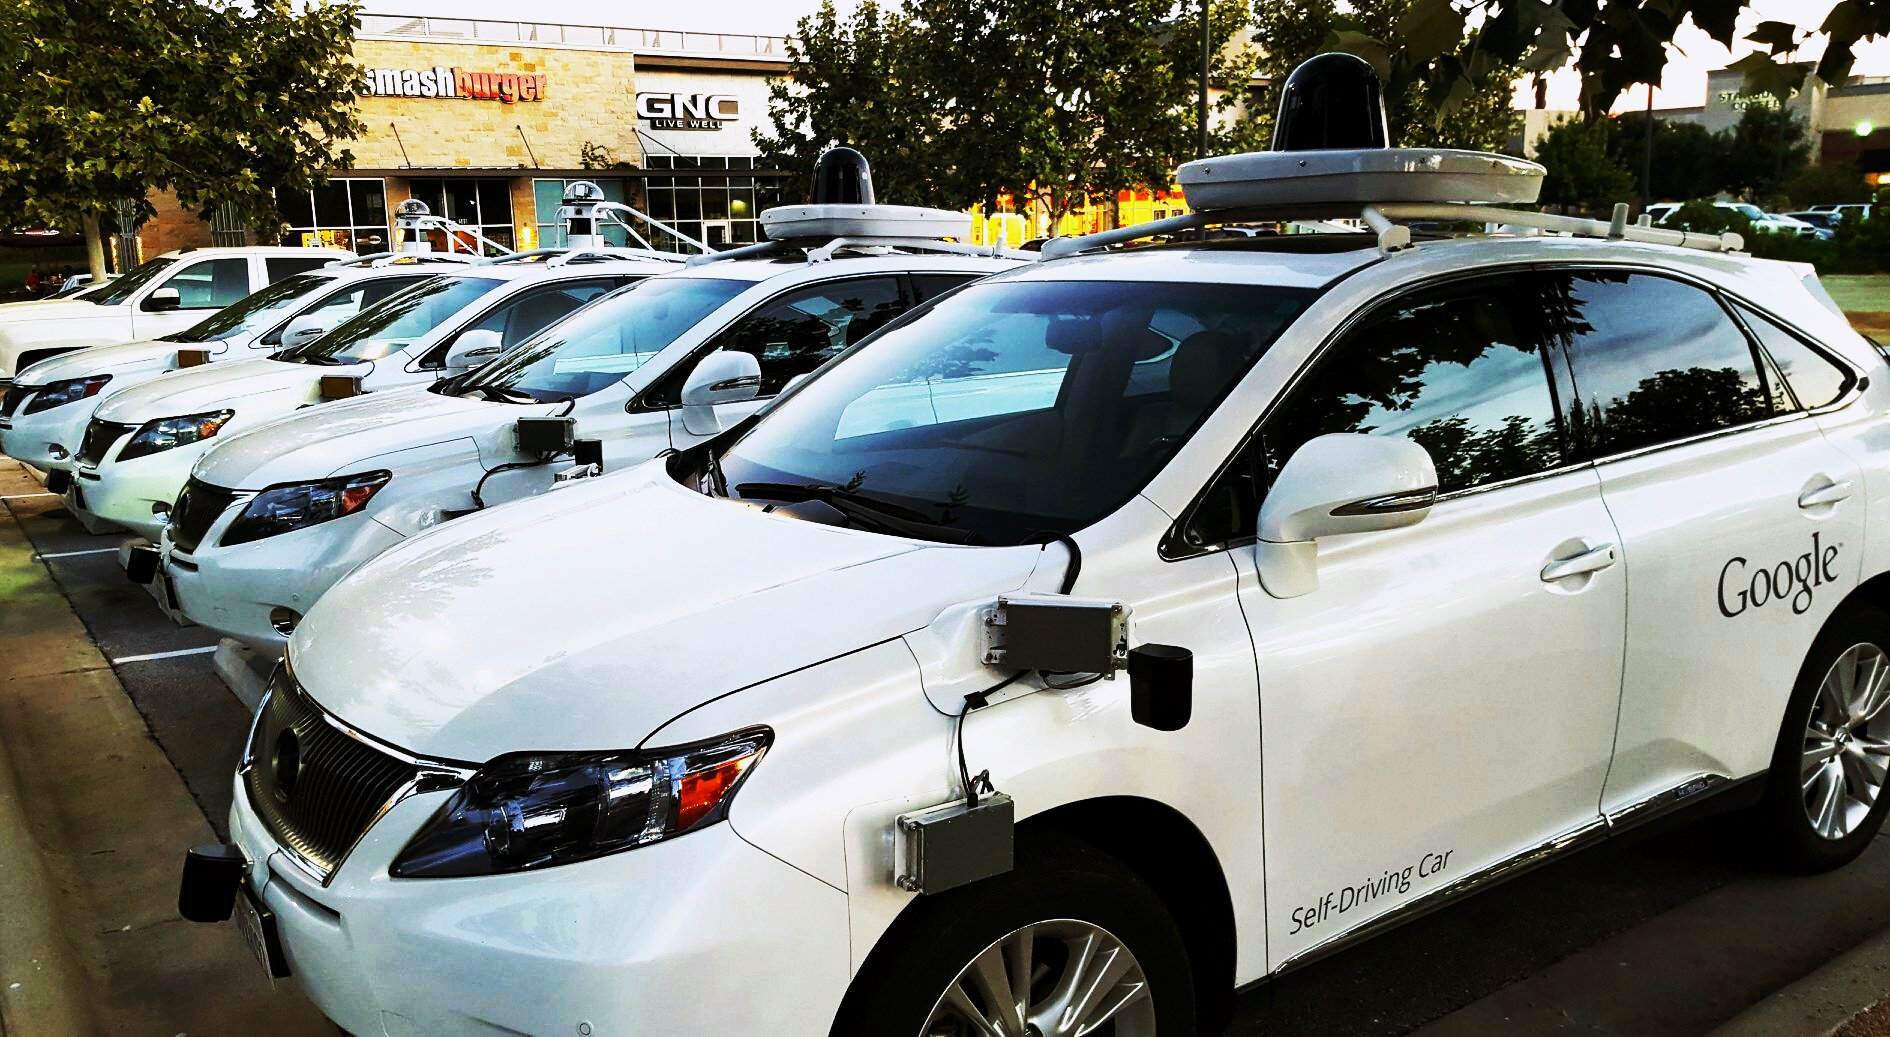 Alaska officials court Google's driverless car industry